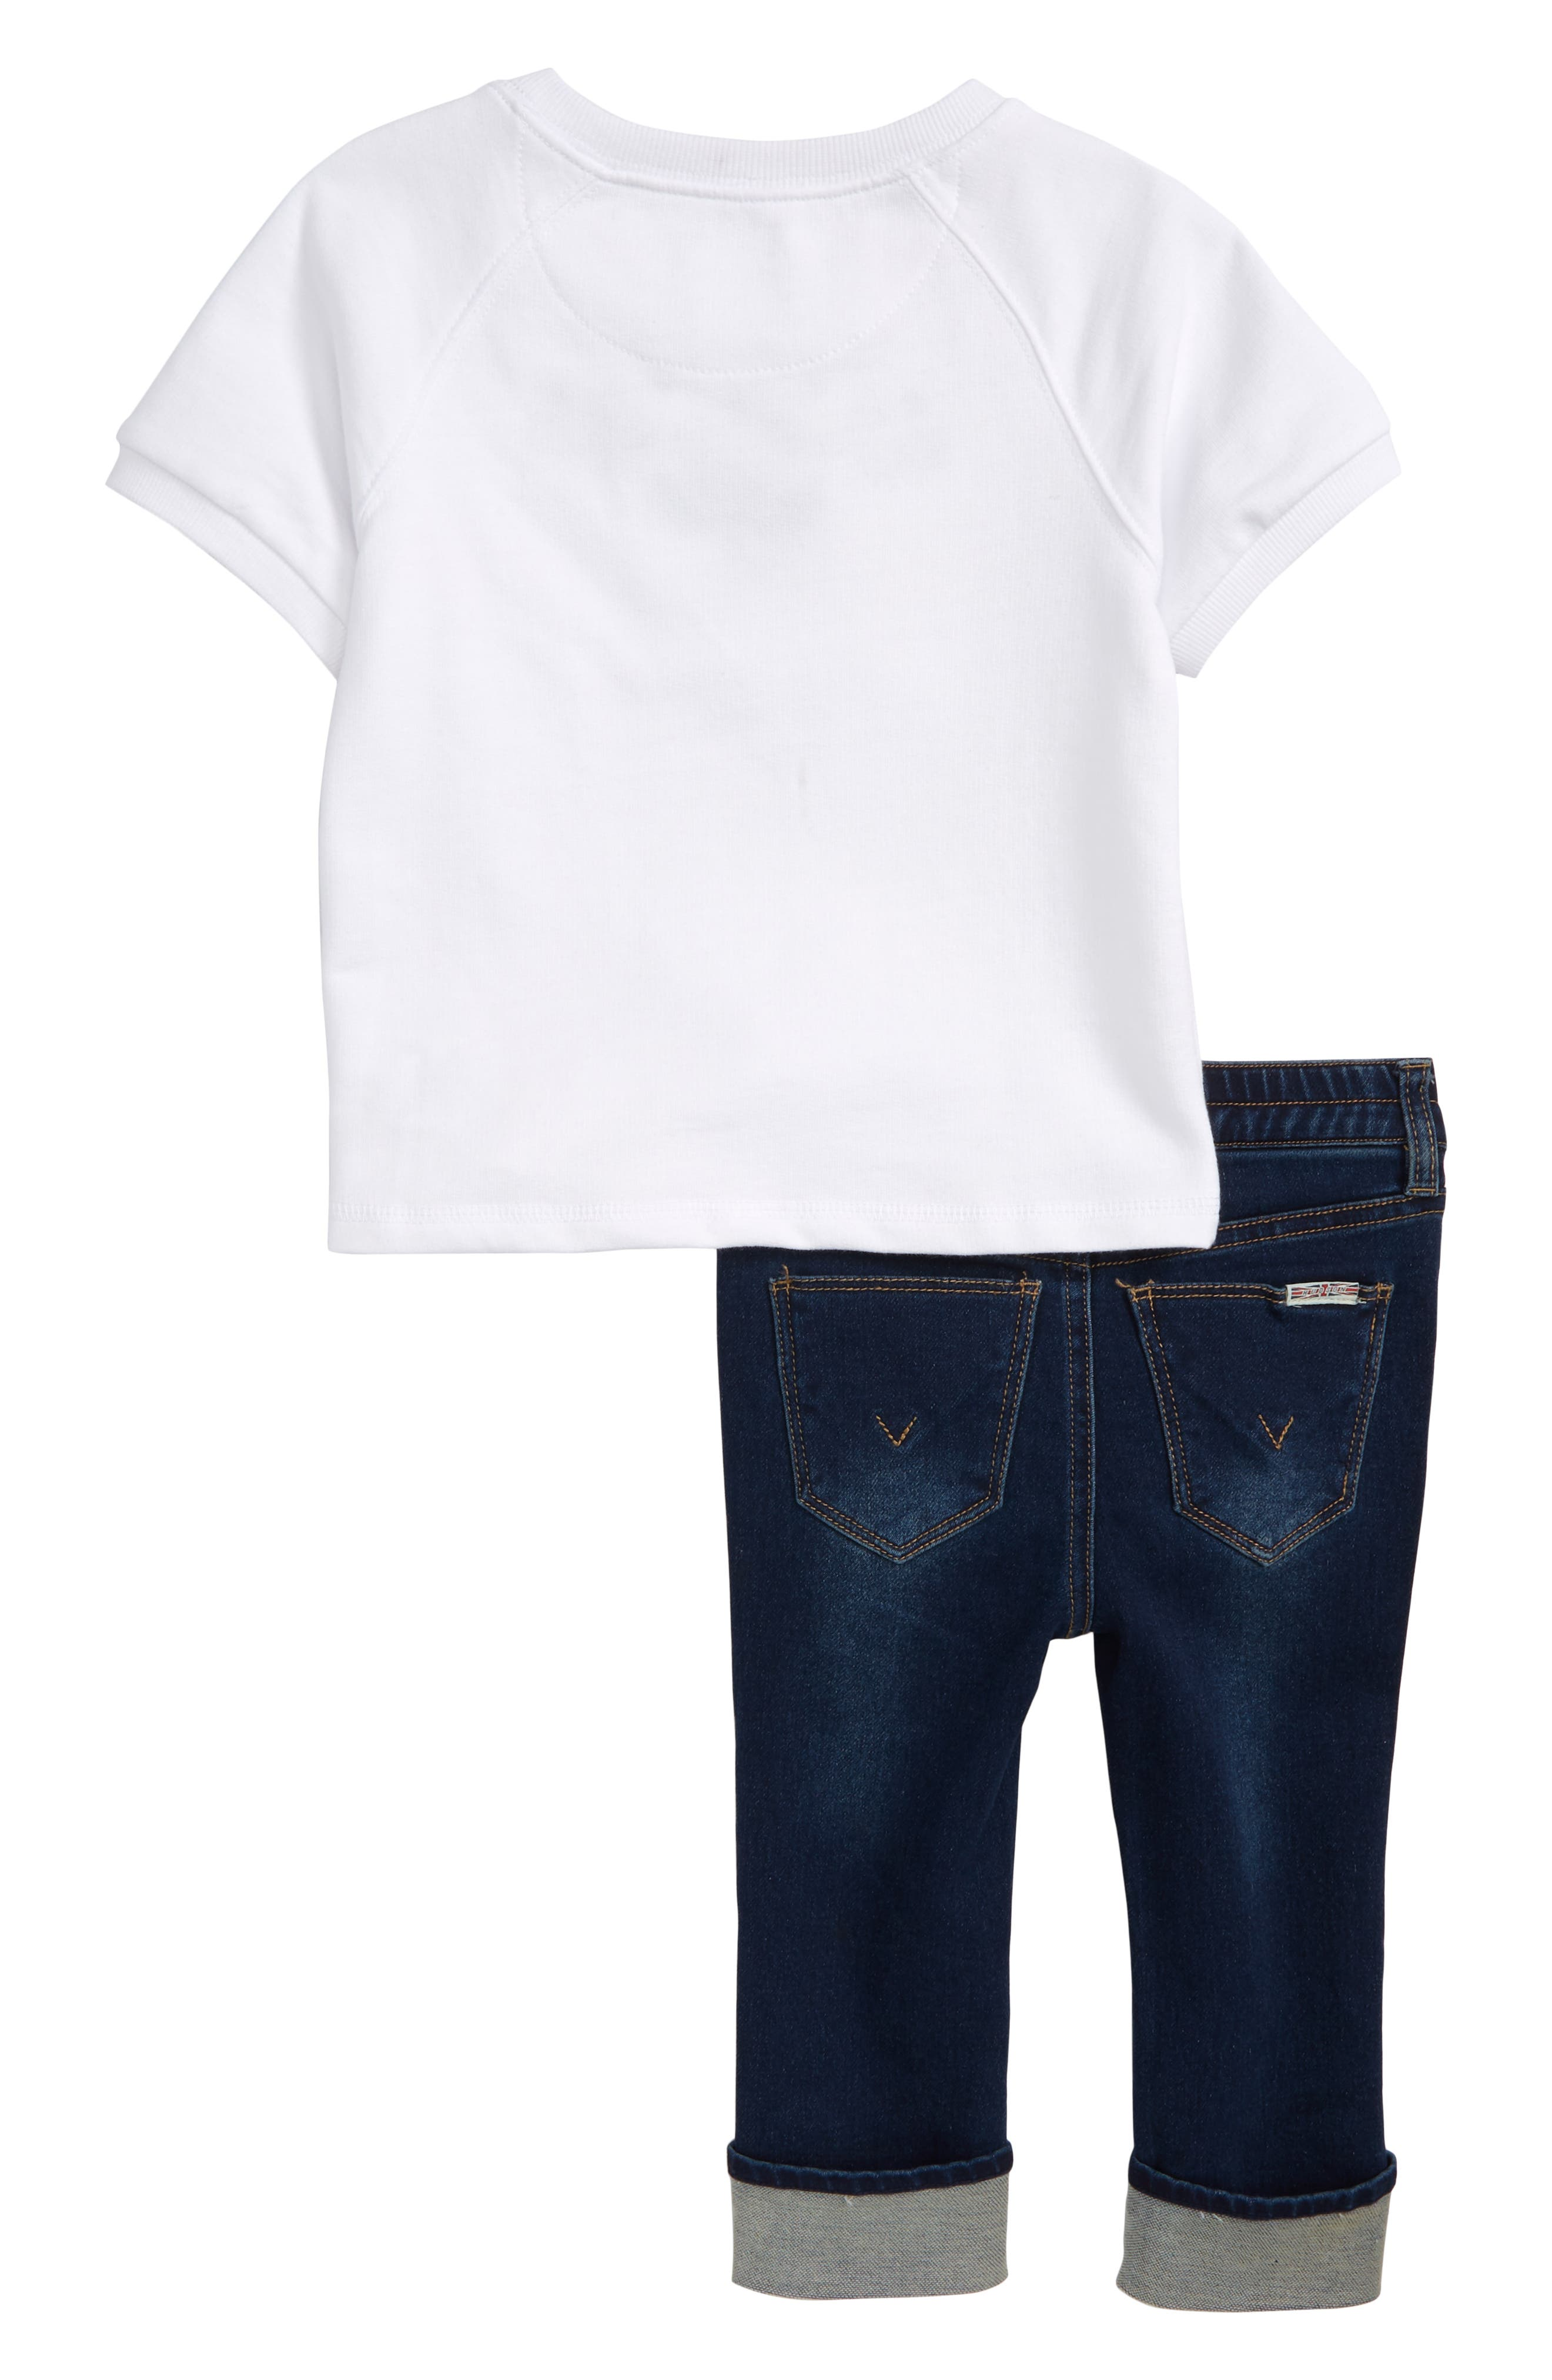 Embroidered Top & Jeans Set,                             Alternate thumbnail 2, color,                             108